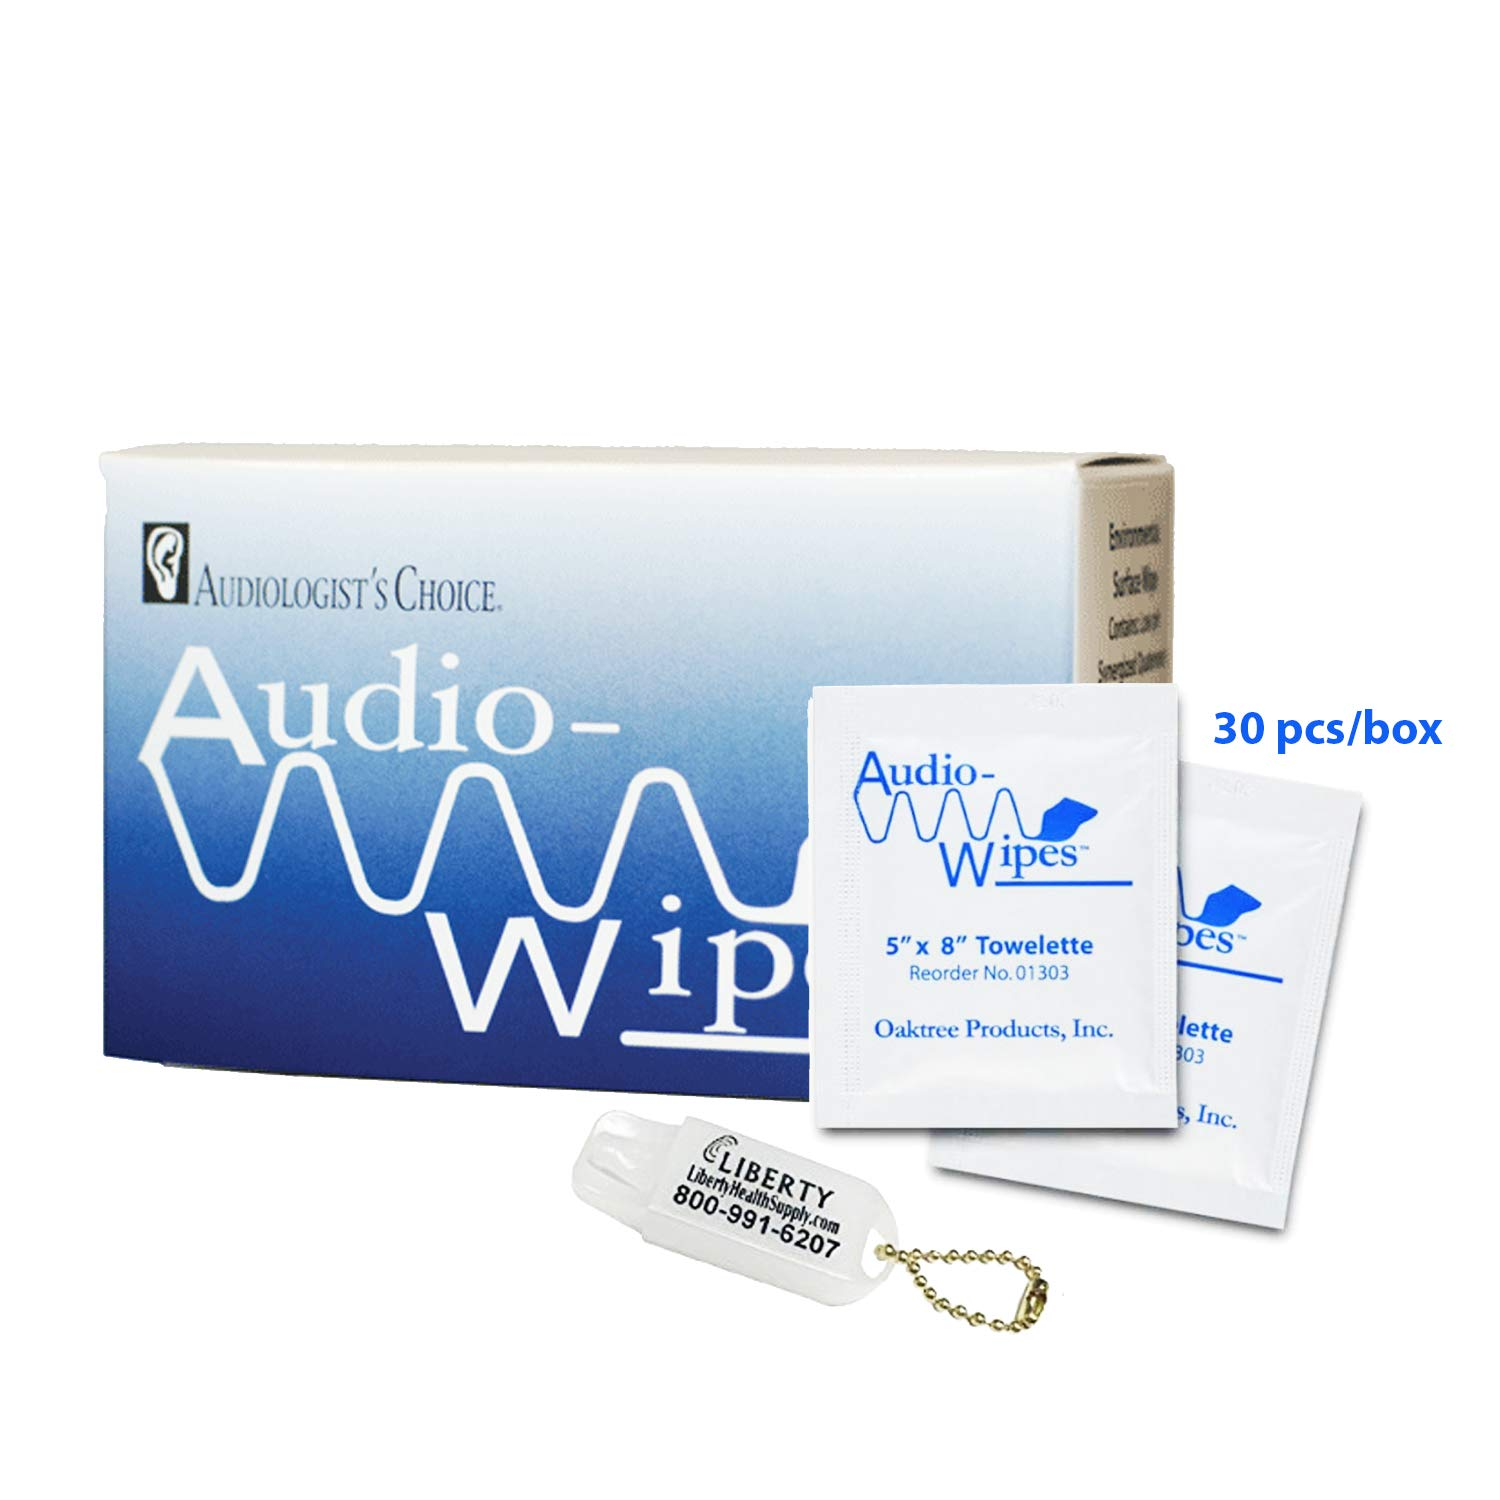 Audio-Wipes Individual Cleaning Towelettes - Box of (30 Wipes) Hearing Aid Cleaning Wipes Towelettes Individually Packaged and Liberty Hearing Aid Battery Keychain